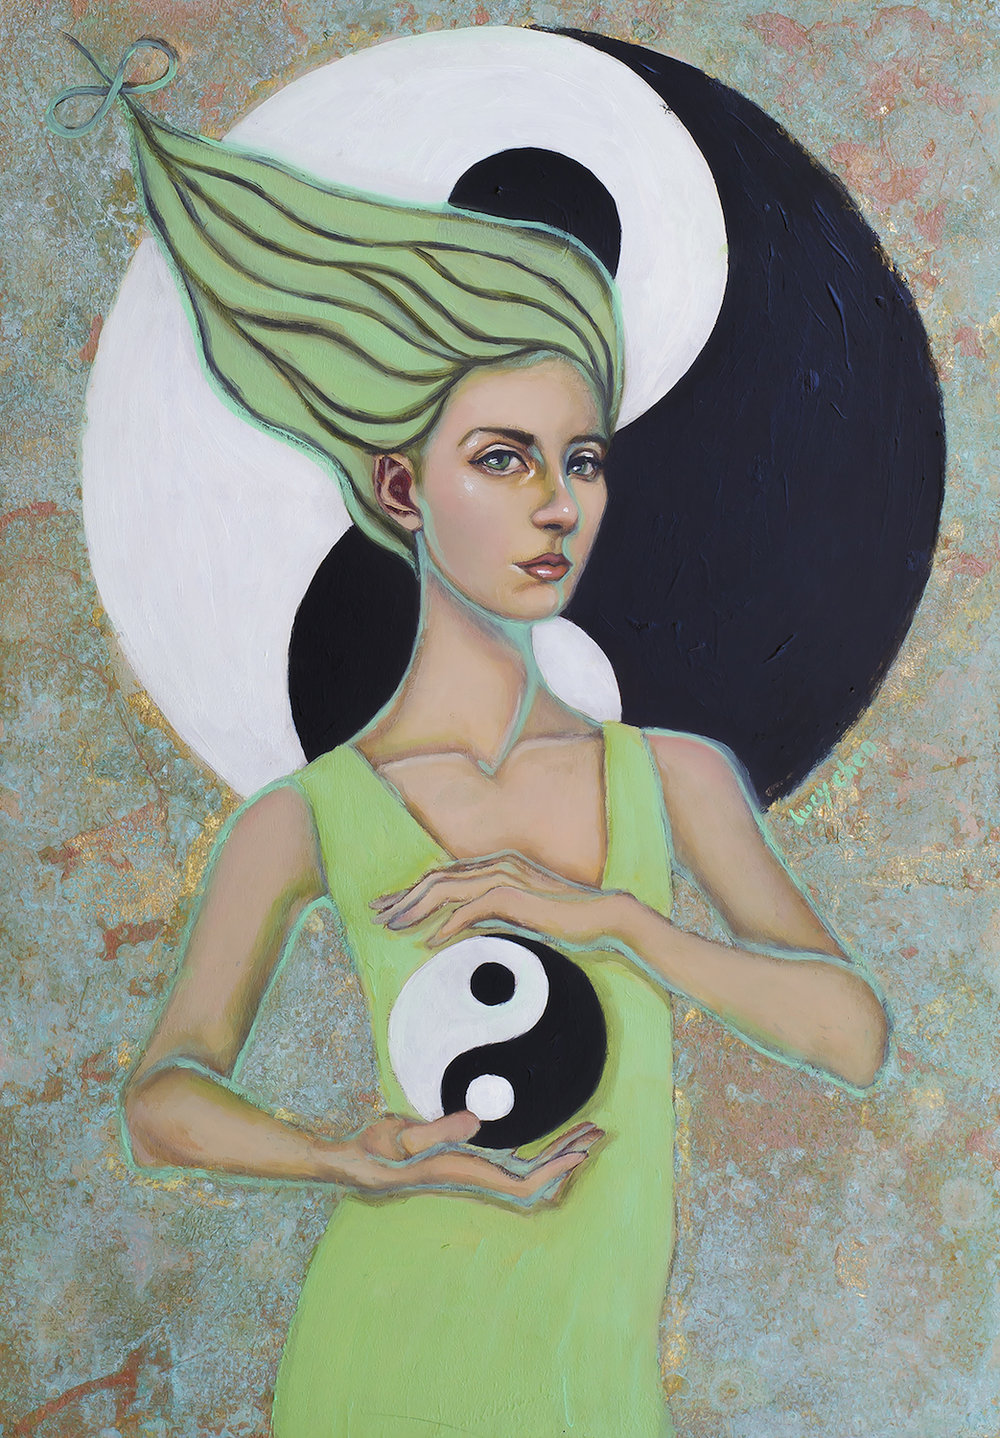 TEMPERANCE, oil and copper leaf on cradled birch wood panel, by Lucy Chen. Original Sold.